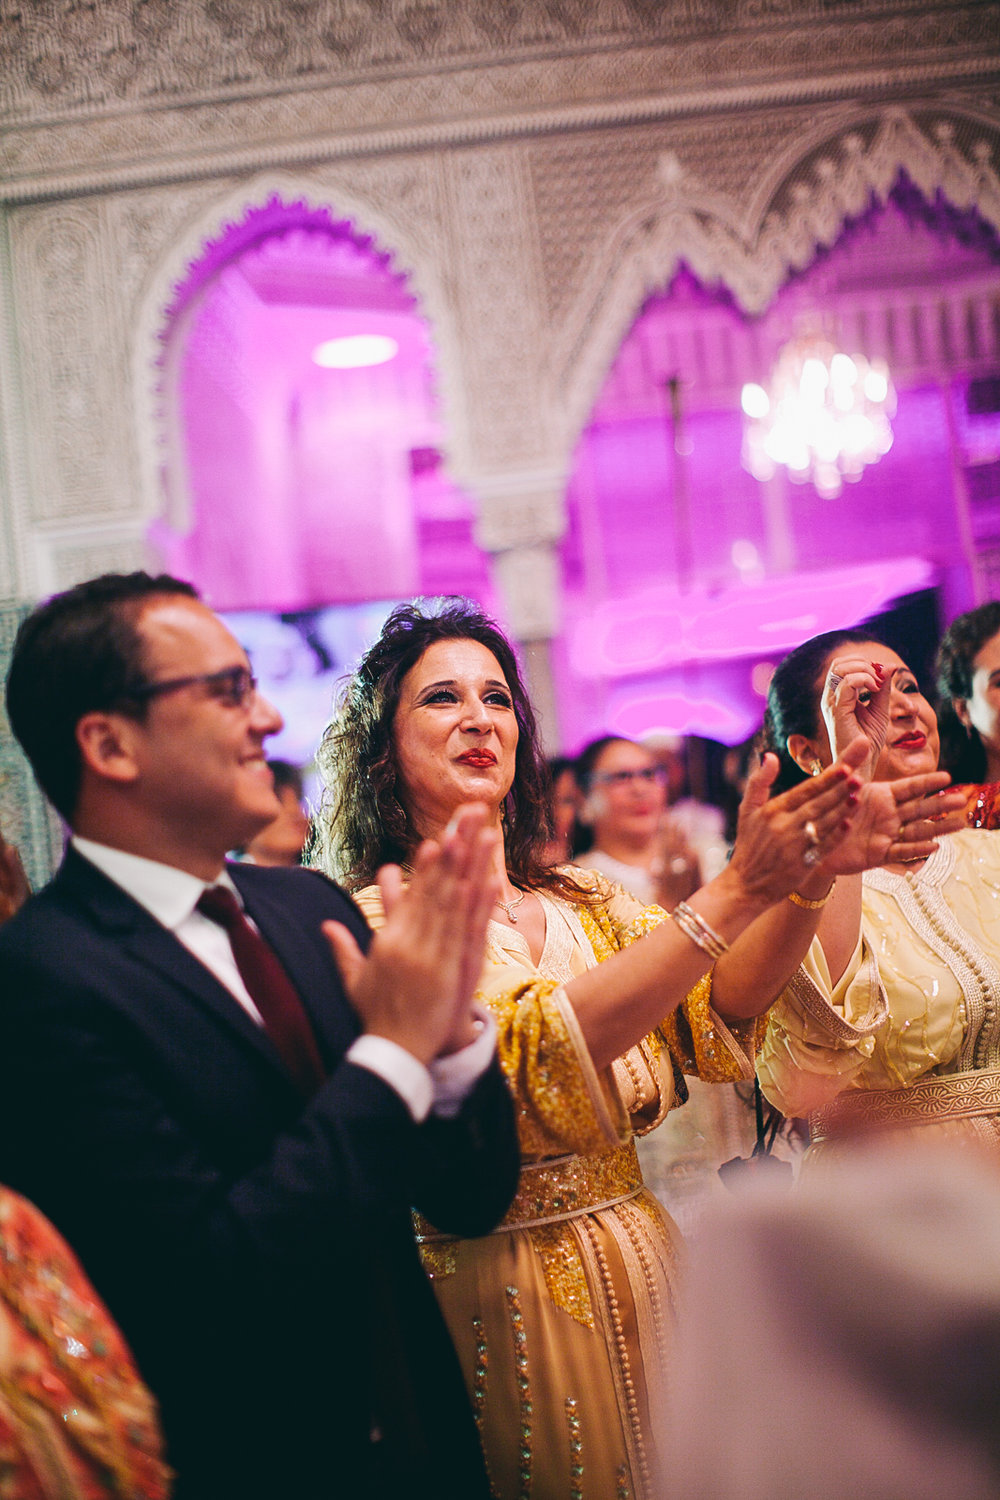 traditional_moroccan_wedding_photographry_casablanca_morocco_houda_vivek_ebony_siovhan_bokeh_photography_071.jpg